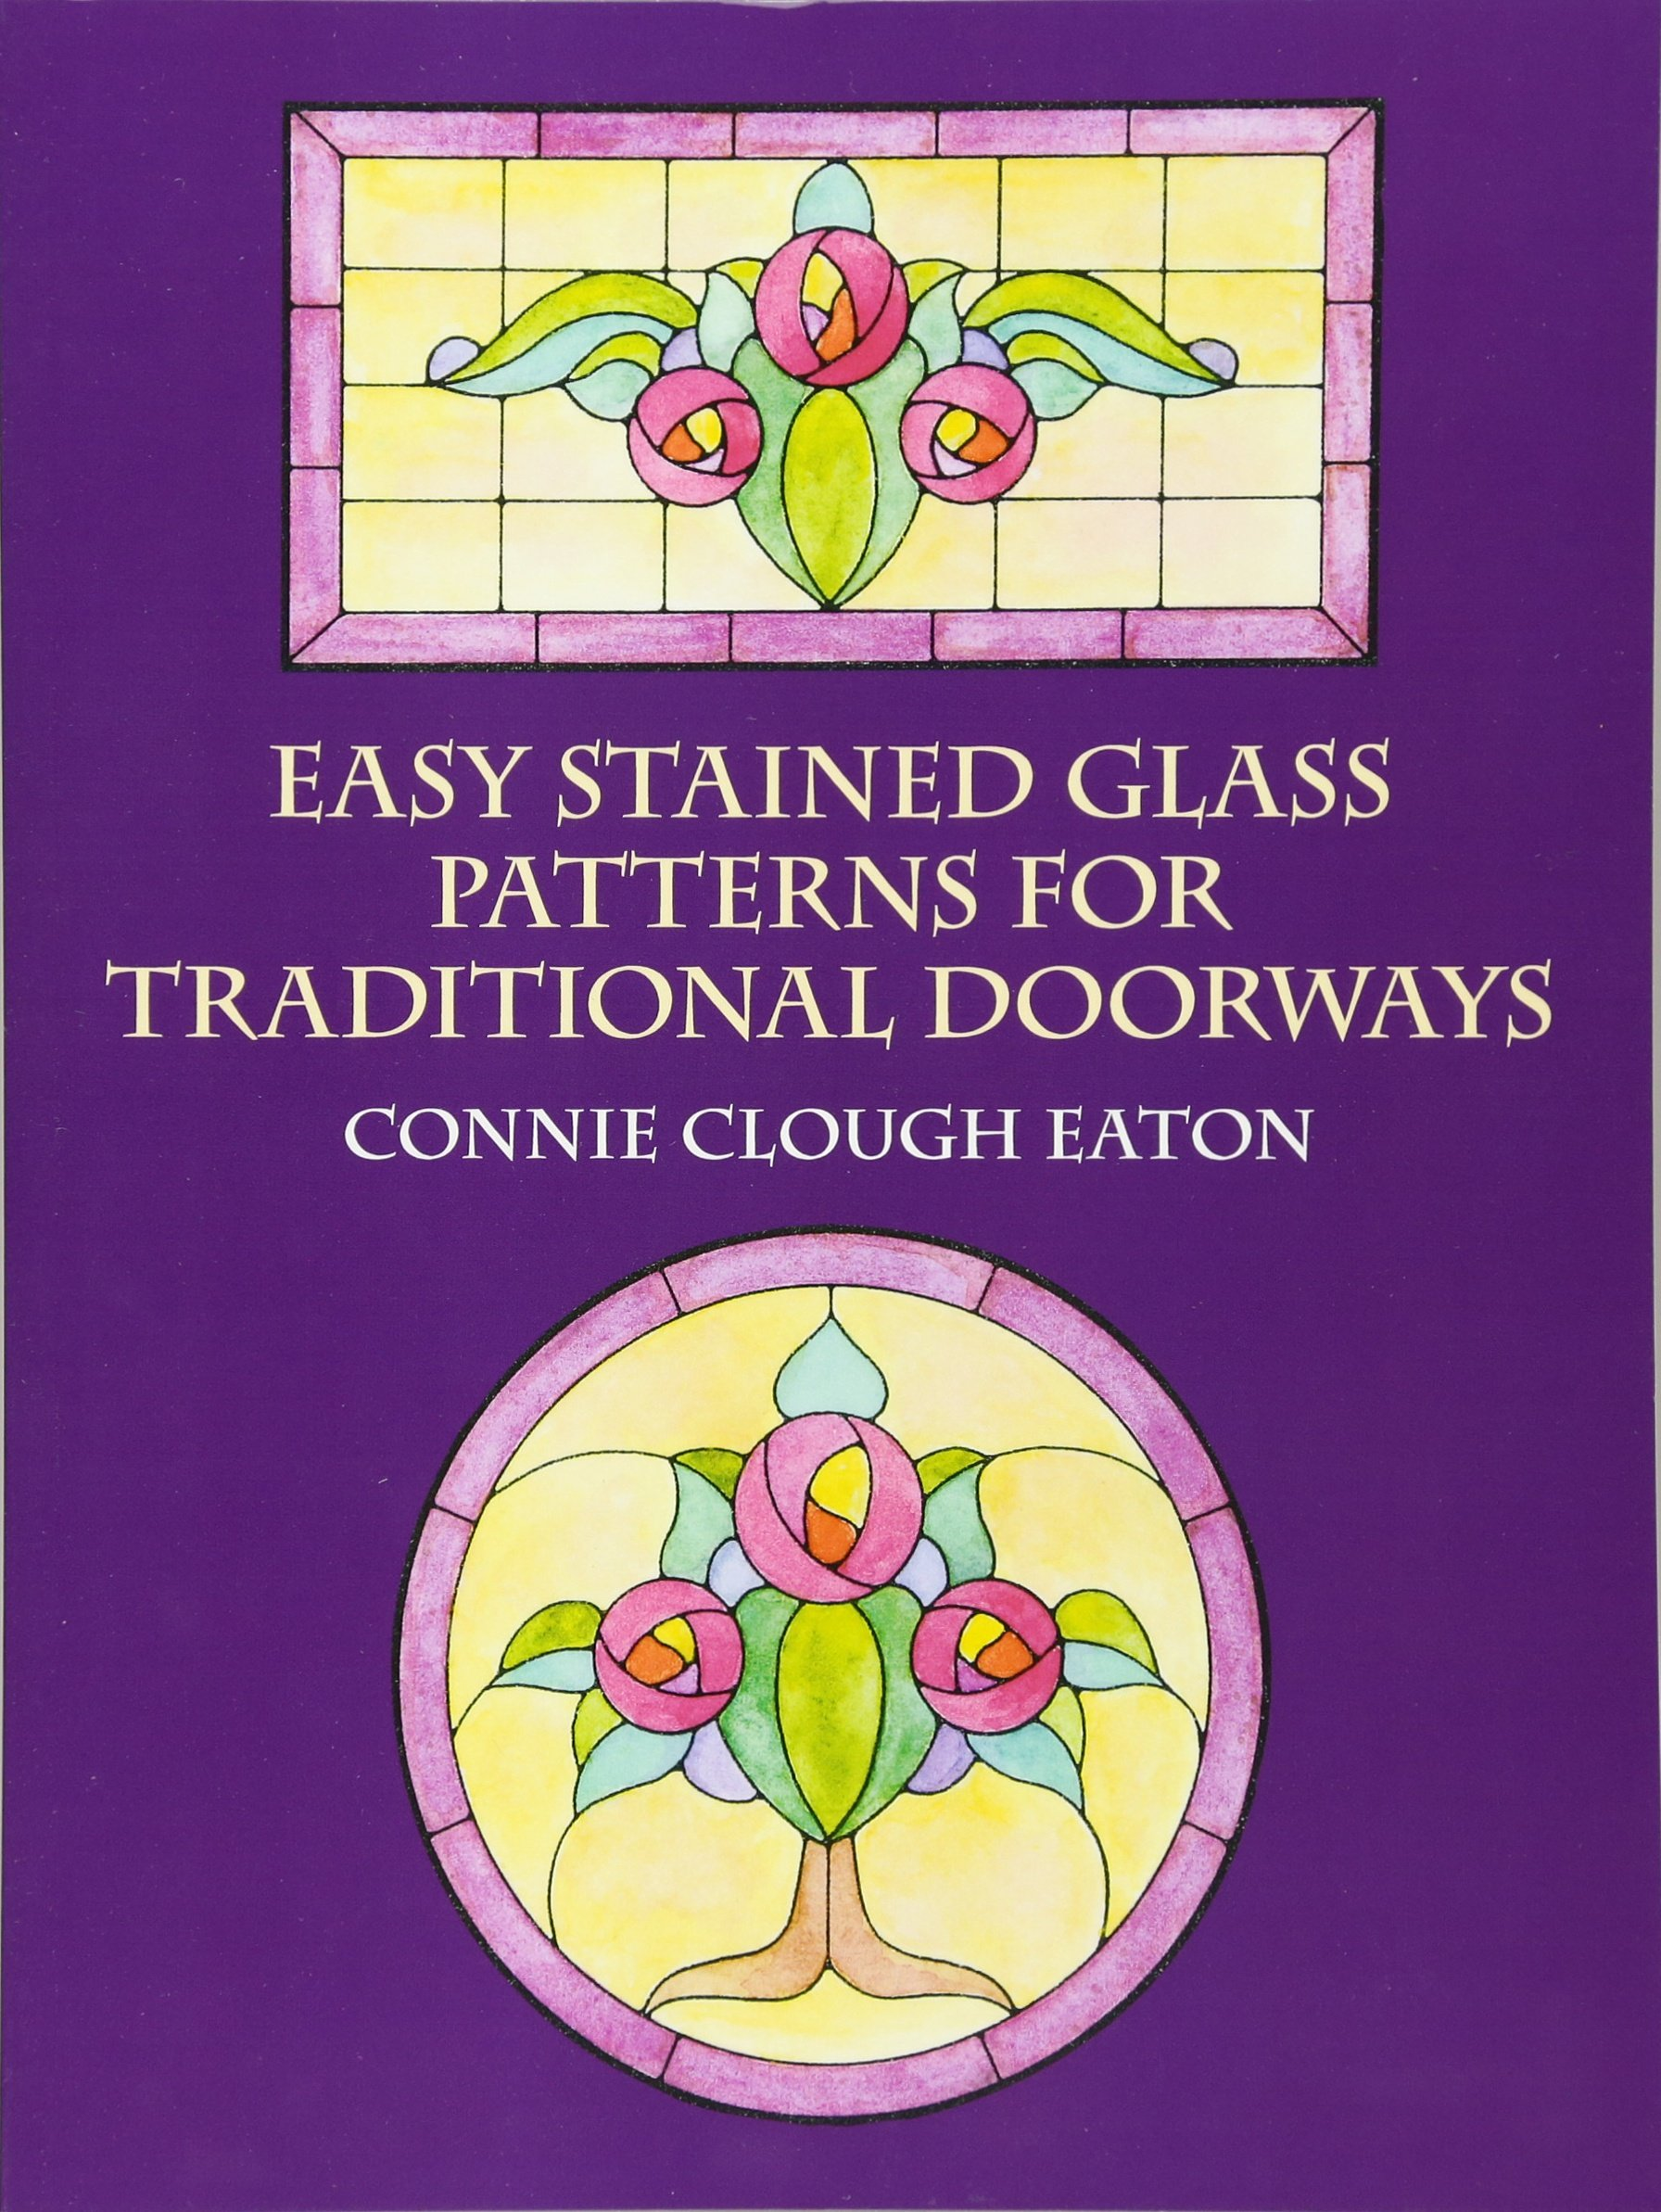 Easy Stained Glass Patterns for Traditional Doorways (Dover Stained Glass Instruction) ebook